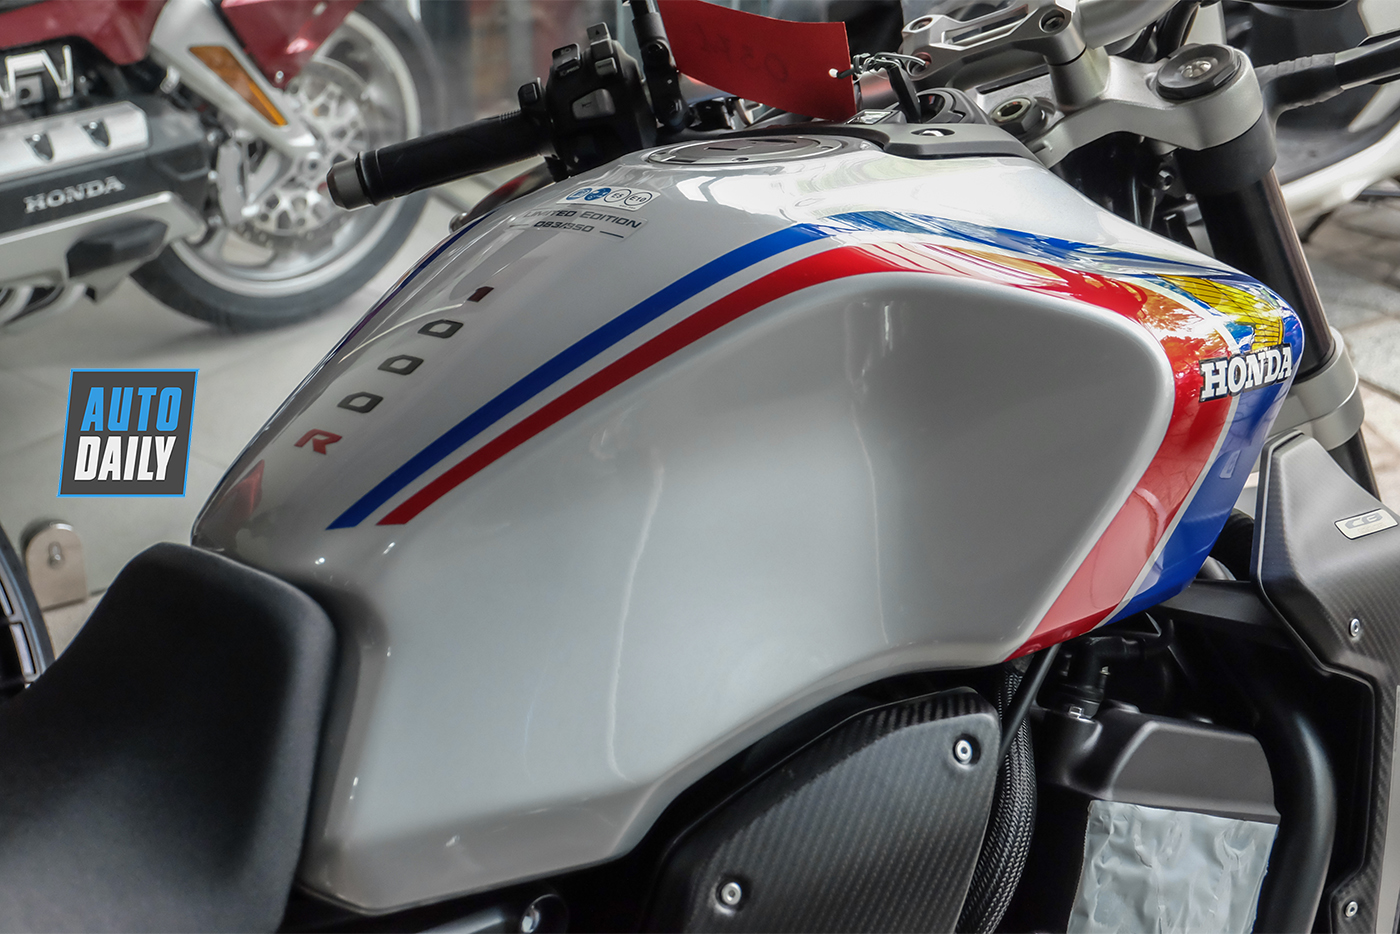 honda-cb1000r-plus-limited-edition-2019-32.jpg